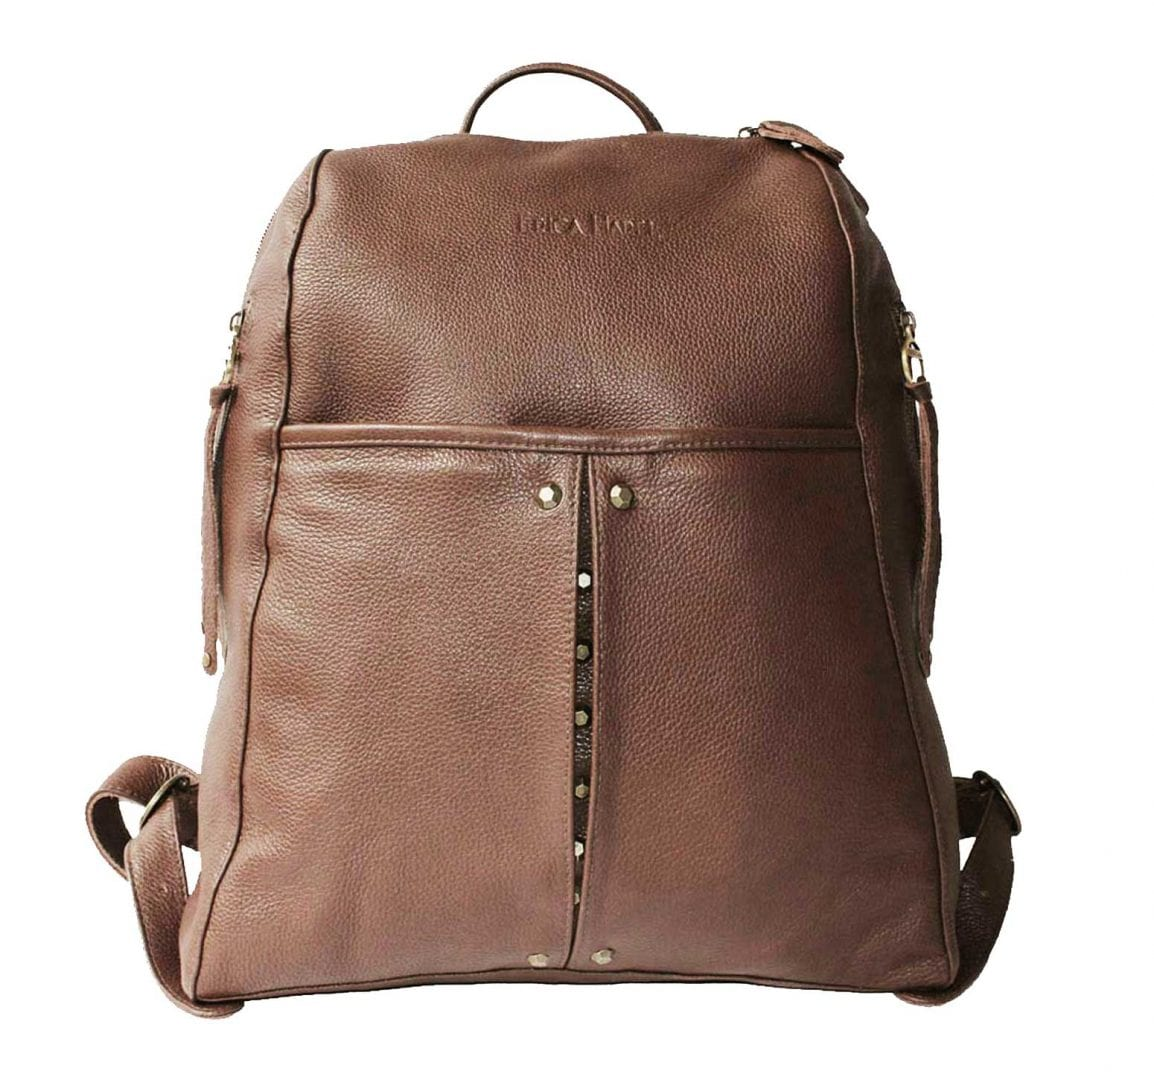 Brown Leather Backpack - Designer Backpack for Men and Women